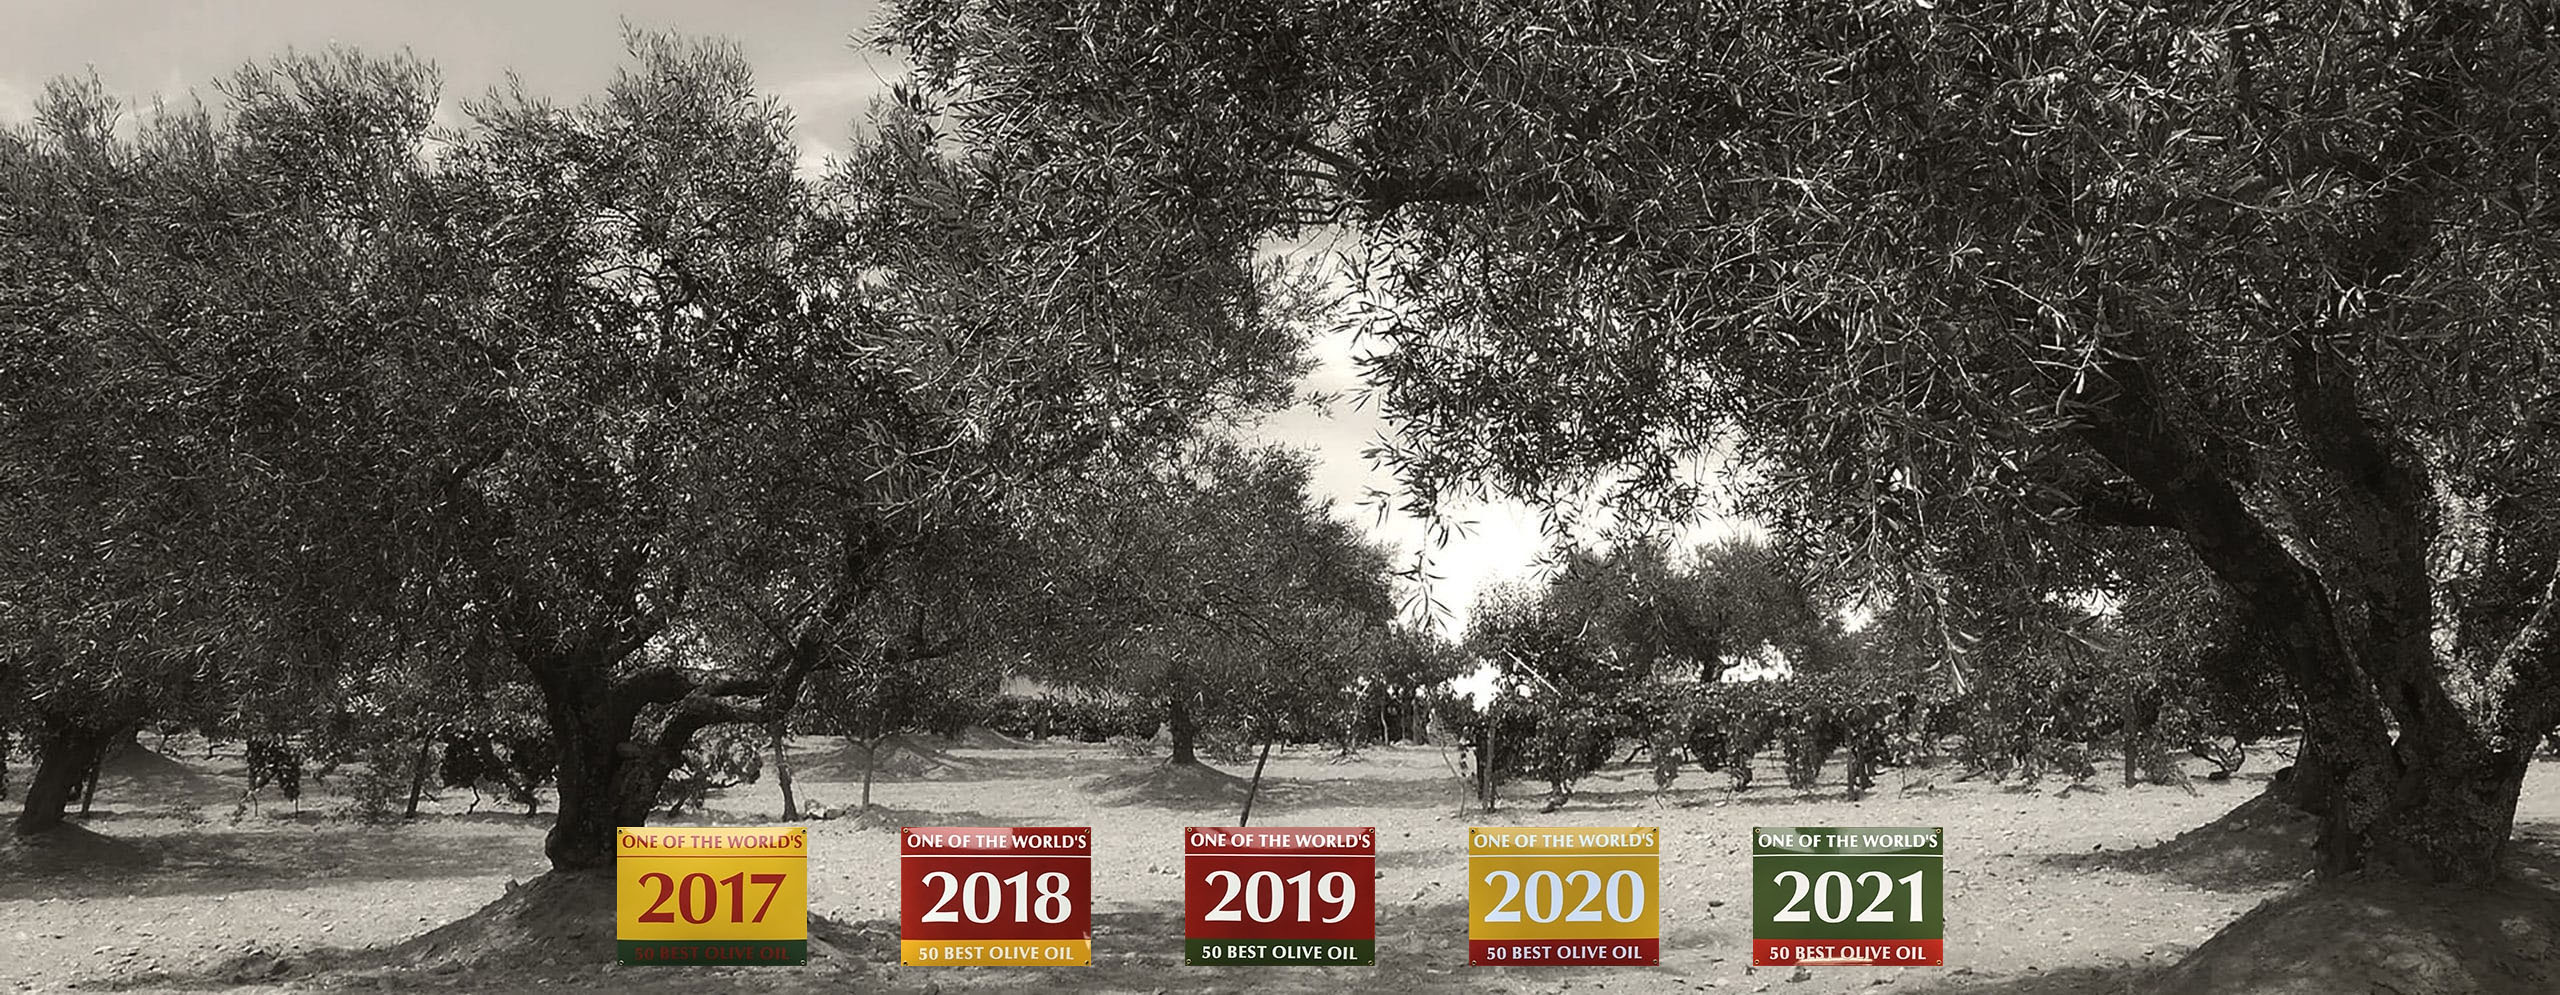 Vale Douro World's best olive oil